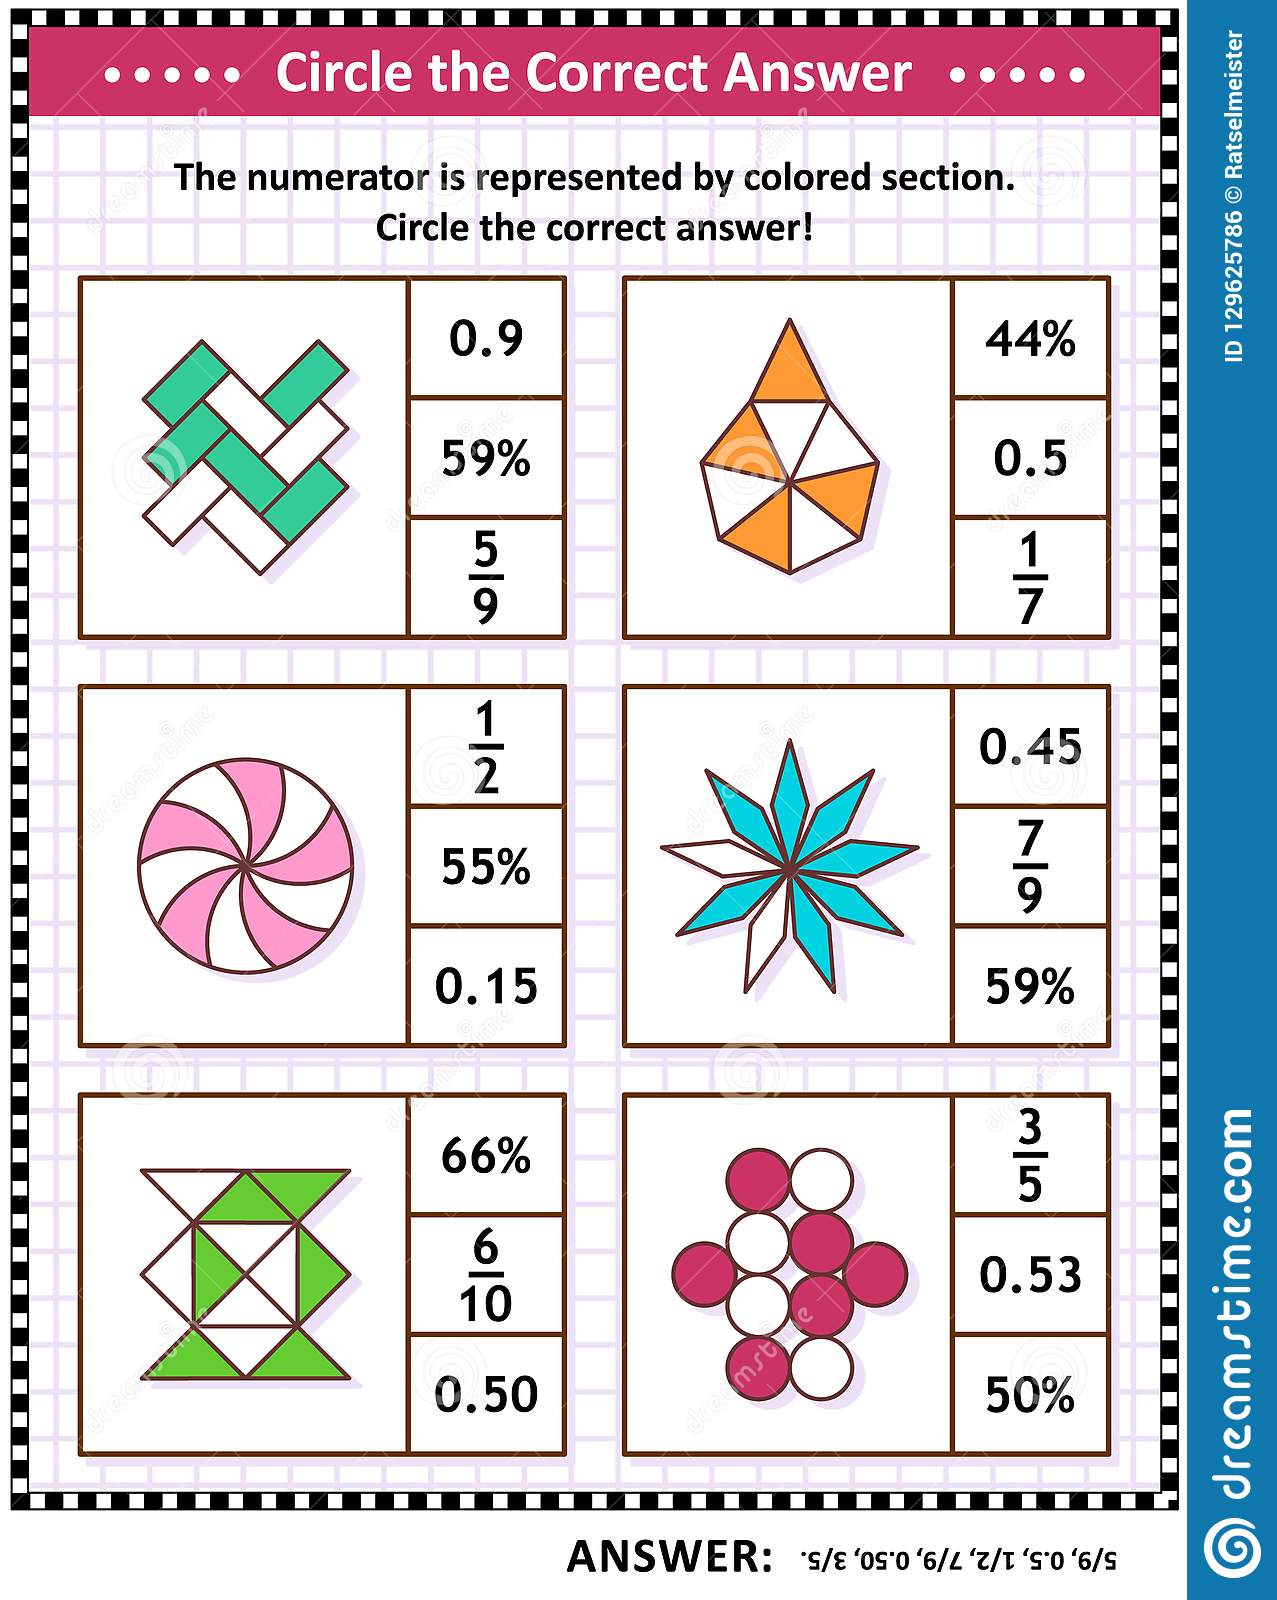 Math Skills Training Visual Puzzle Worksheet